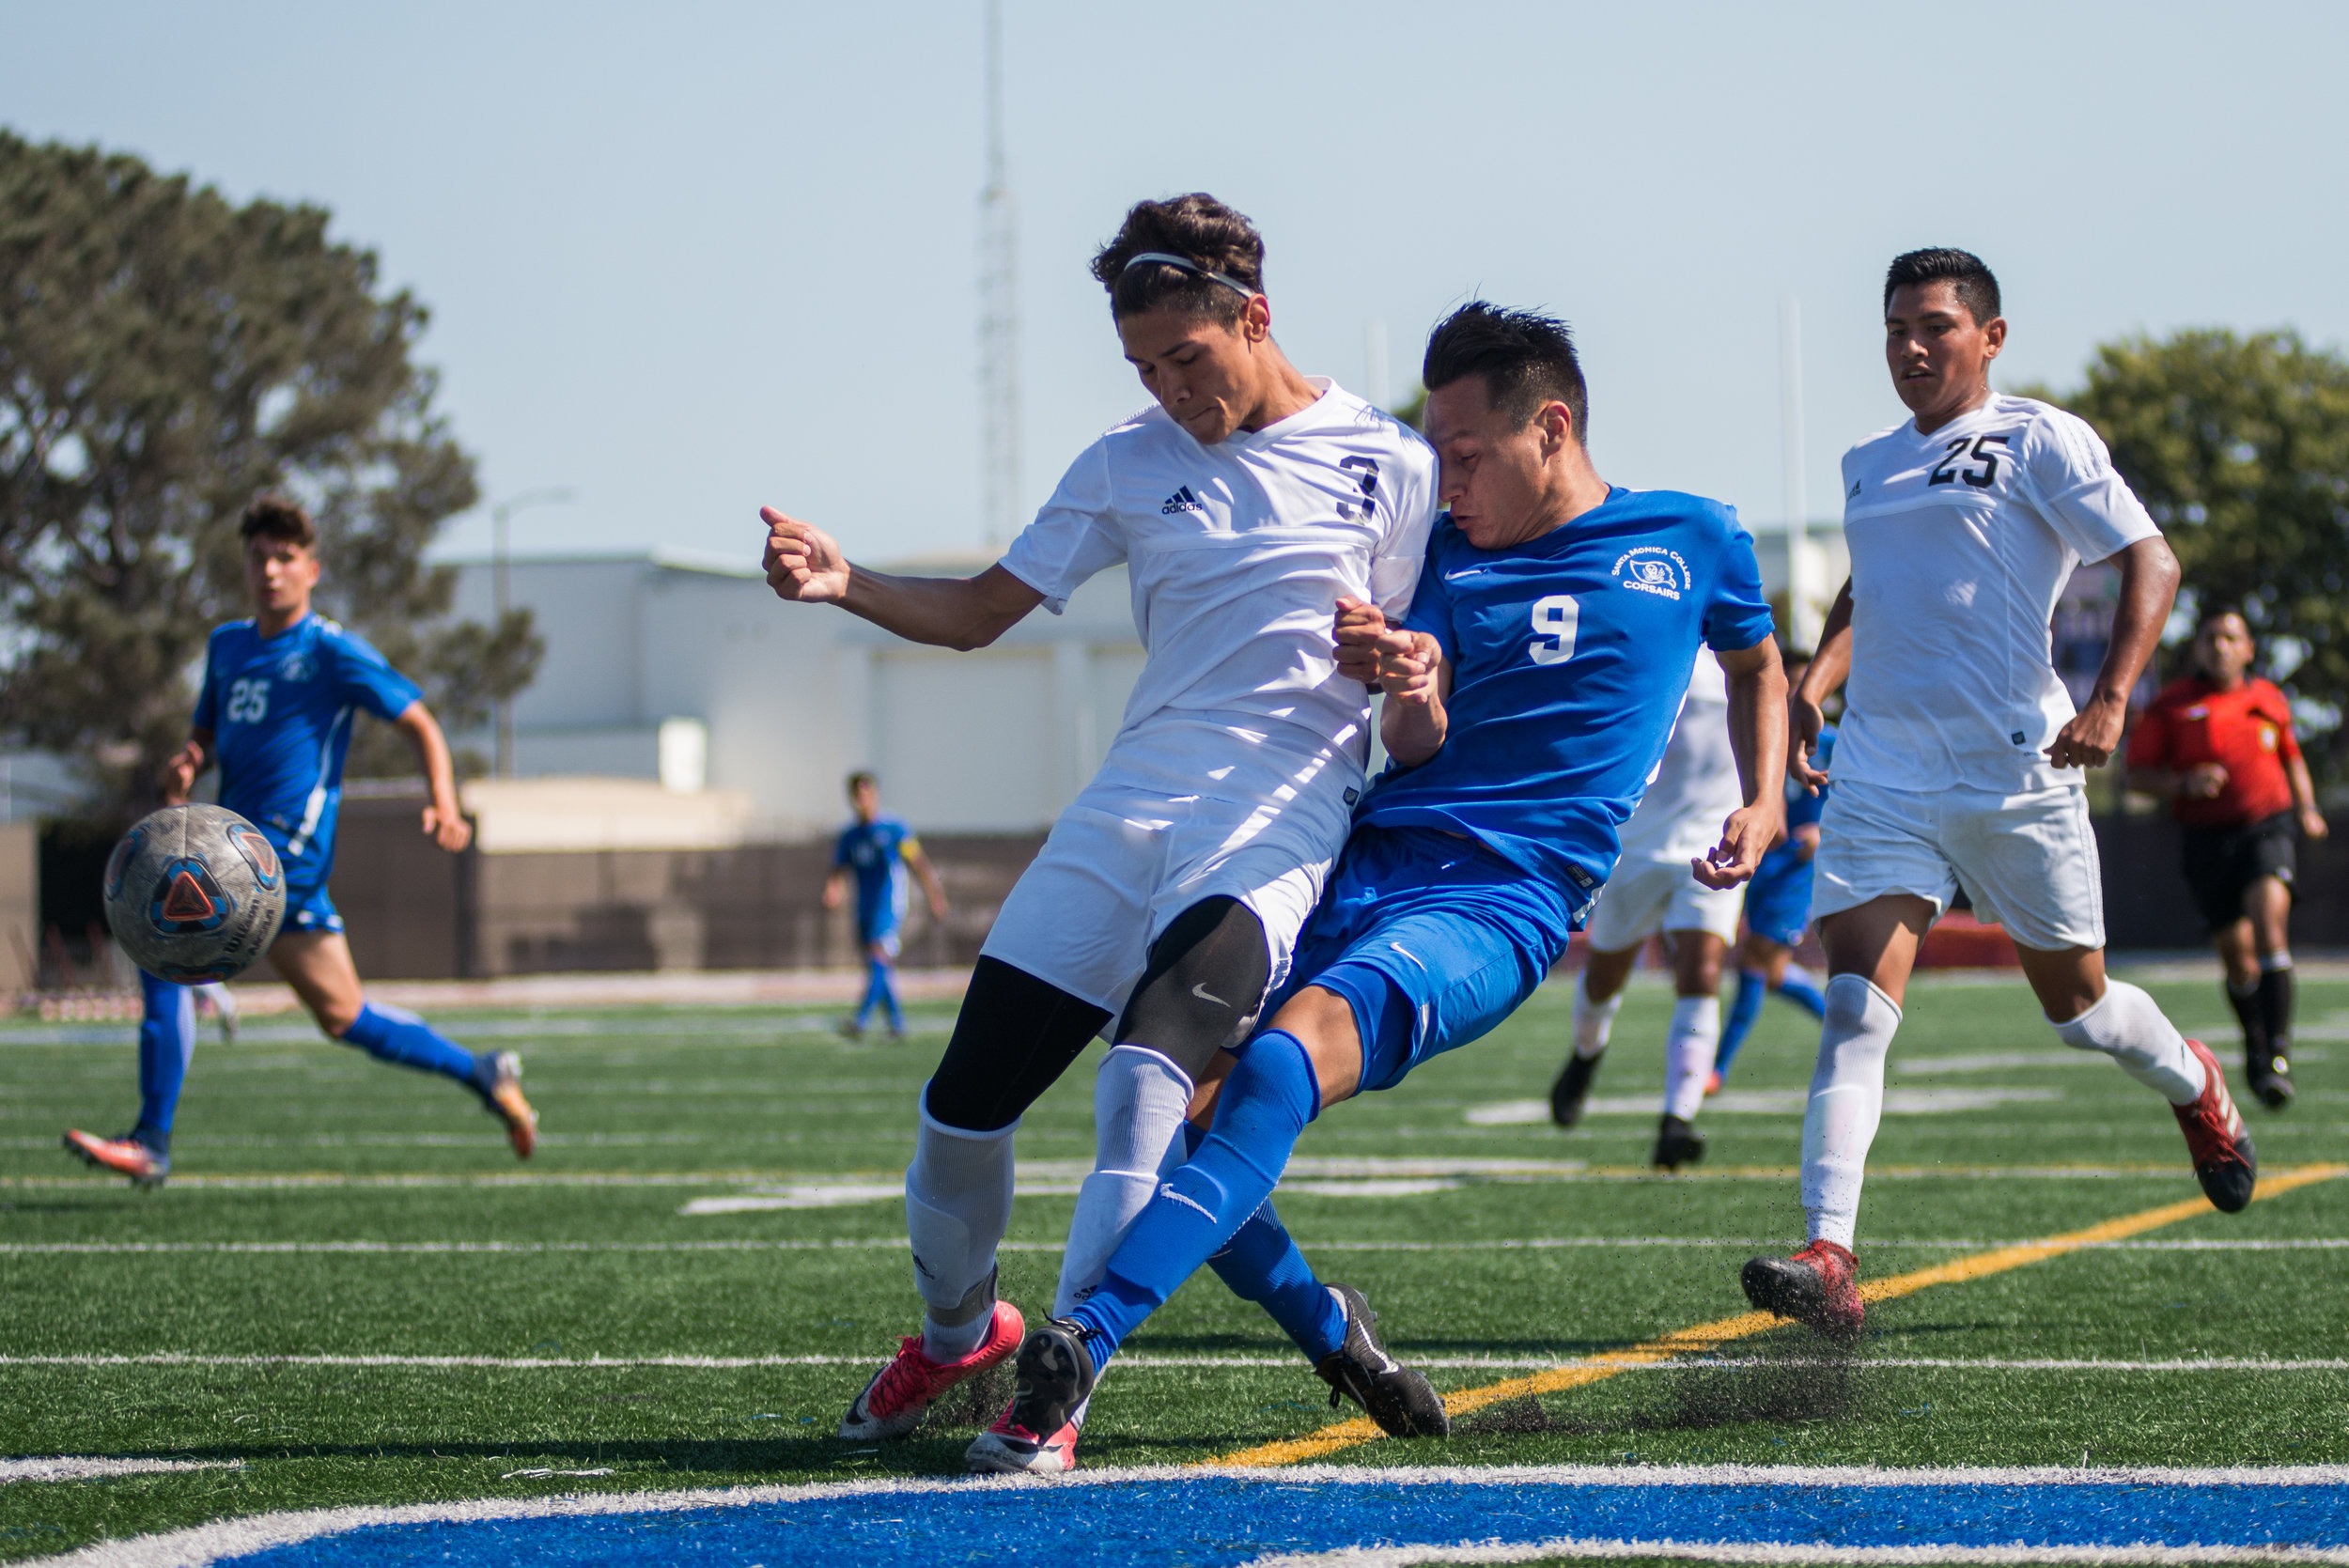 Santa Monica College Corsair Chris Negrete (9) (CTR) contests a pass against Citrus College Owl Jayson Yepez Chavez (3) (L) on Tuesday September 26, 2017 on the Corsair Field at Santa Monica College in Santa Monica, California. The Corsairs tied the game 1-1. (Josue Martinez)